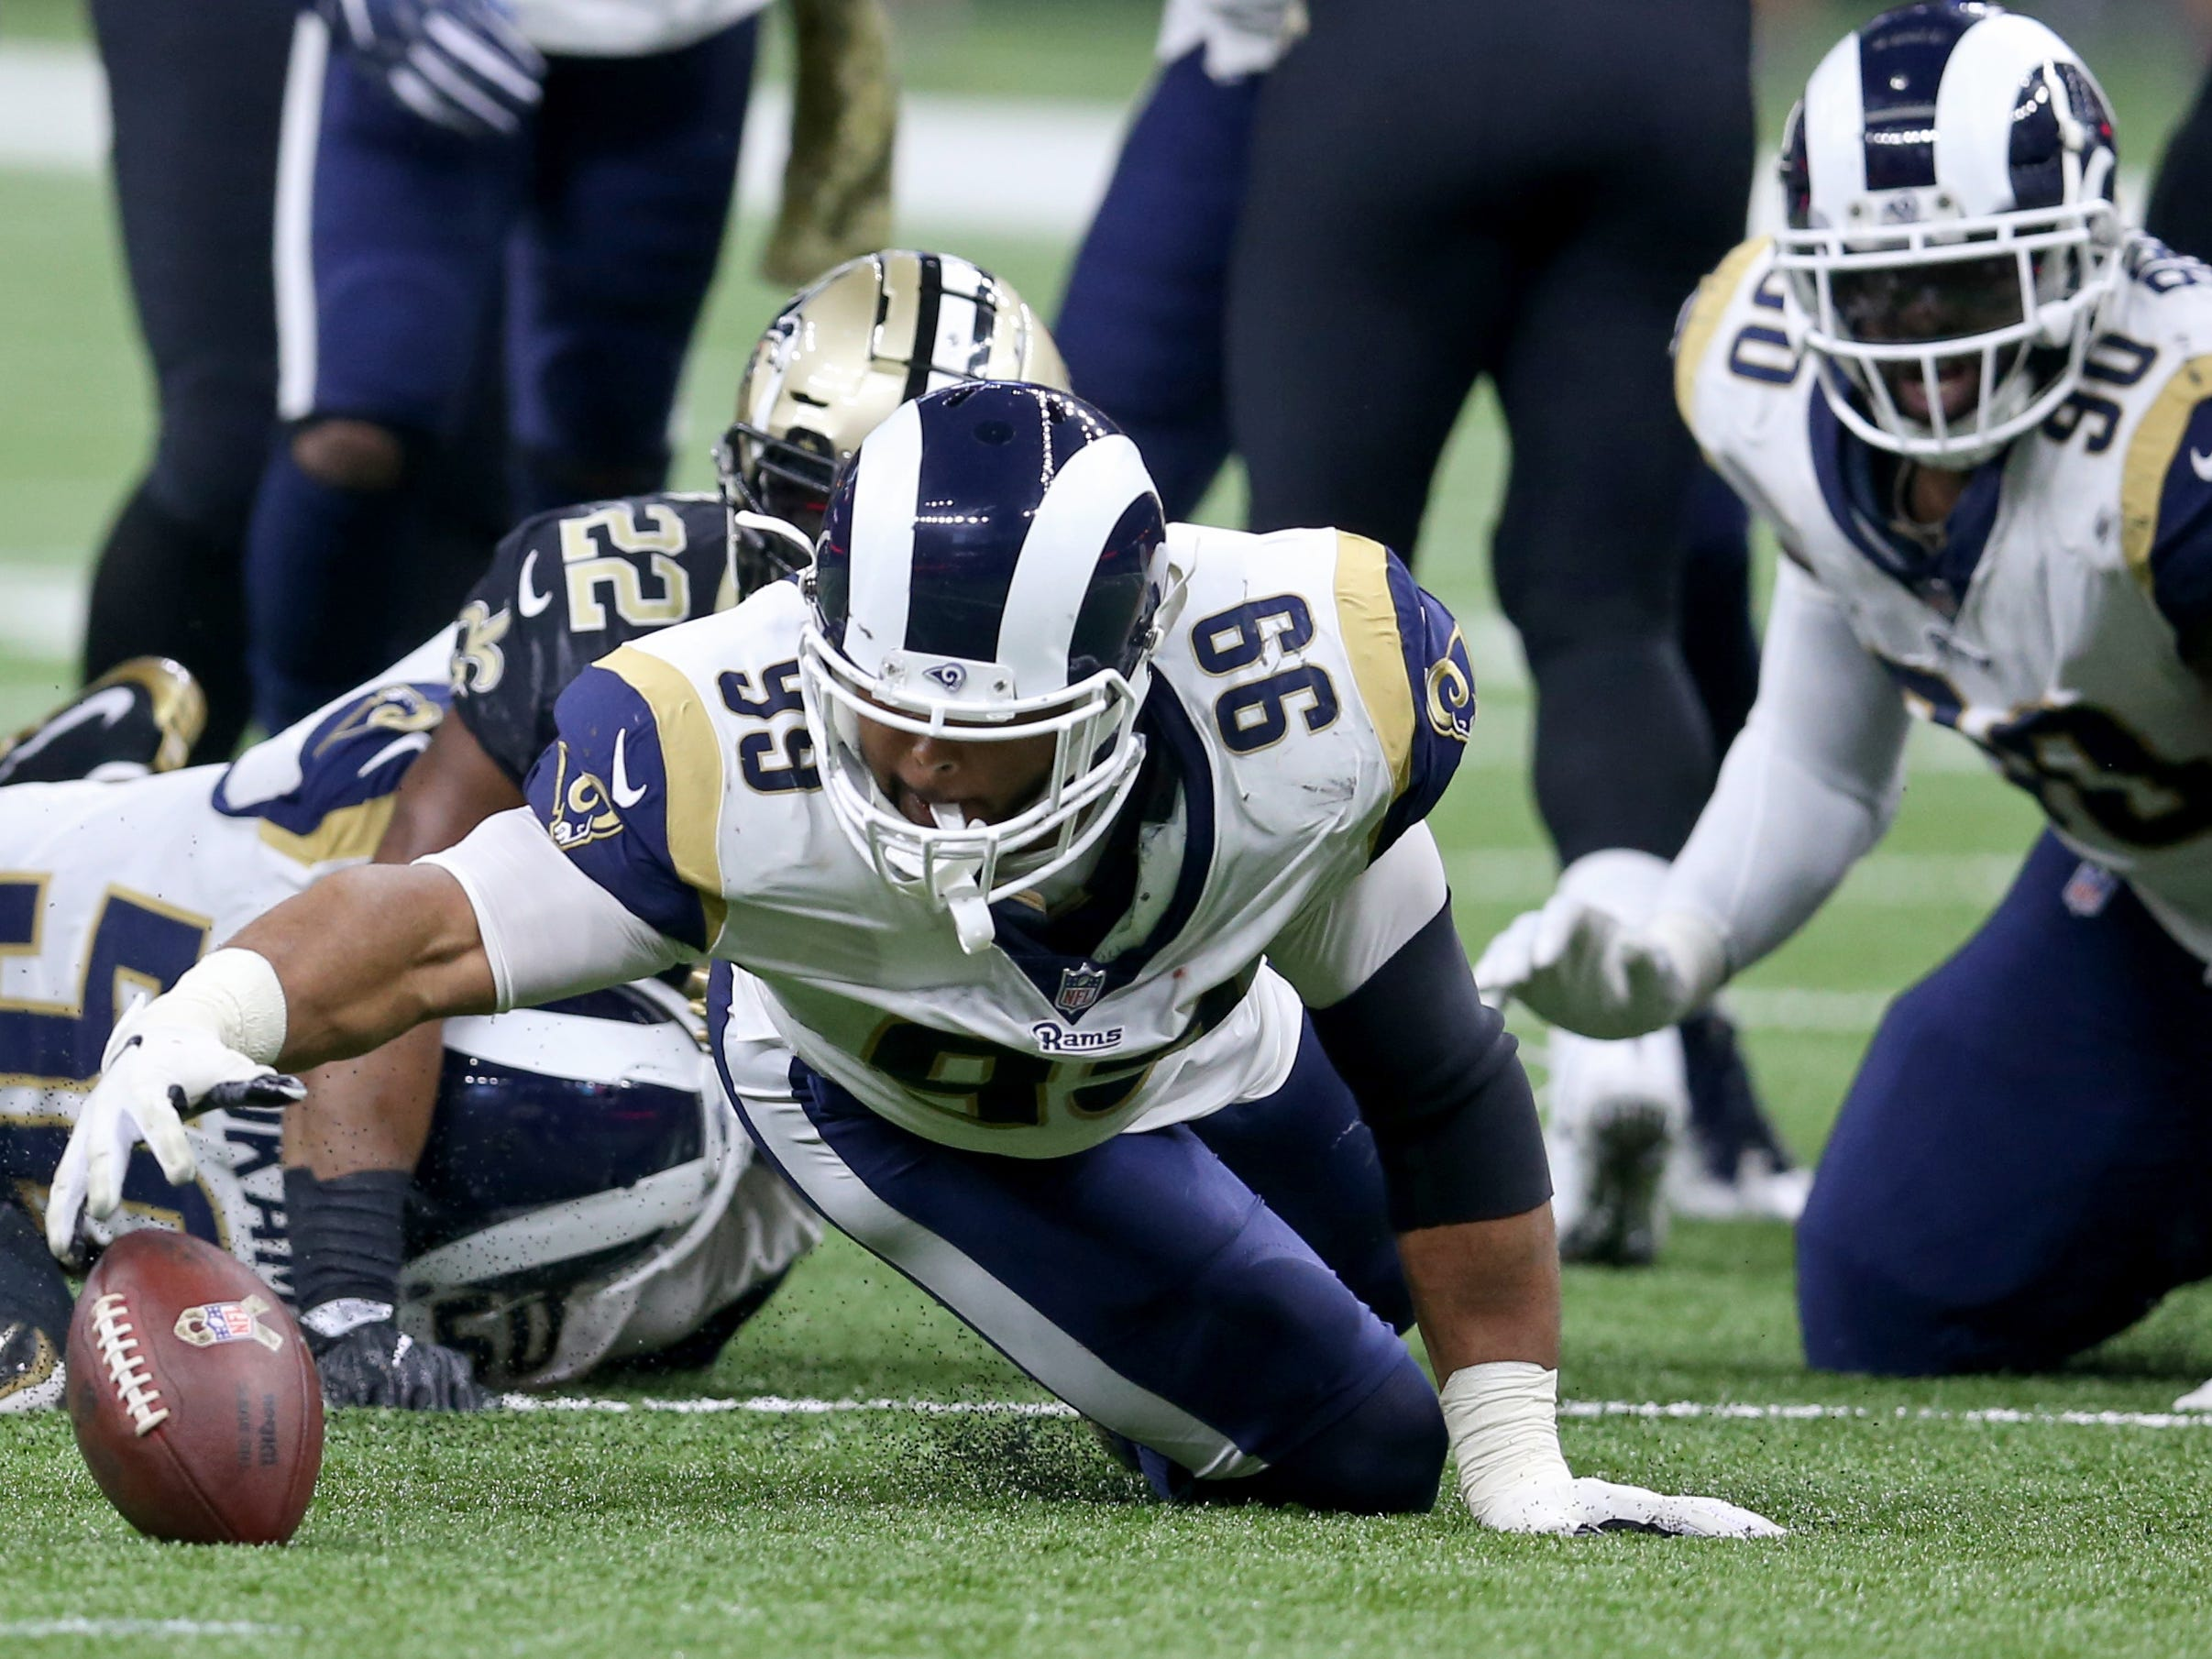 1. Rams (8-1) | Last game: Lost to the Saints, 45-35 | Previous ranking: 1